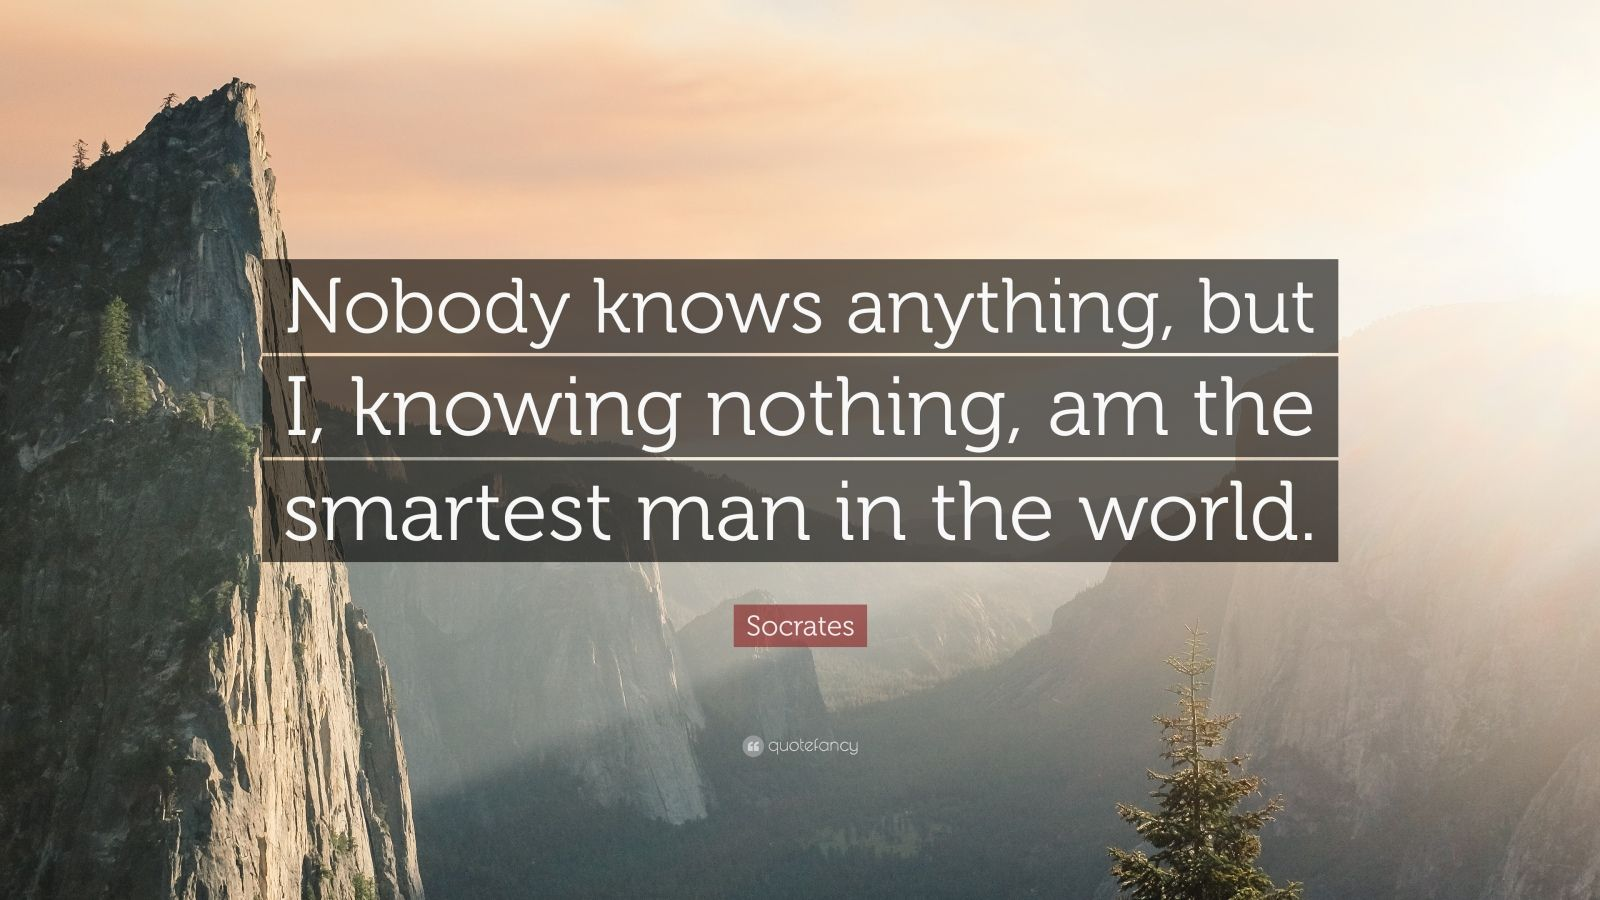 """Socrates Quote: """"Nobody knows anything, but I, knowing nothing, am the smartest man in the world."""""""